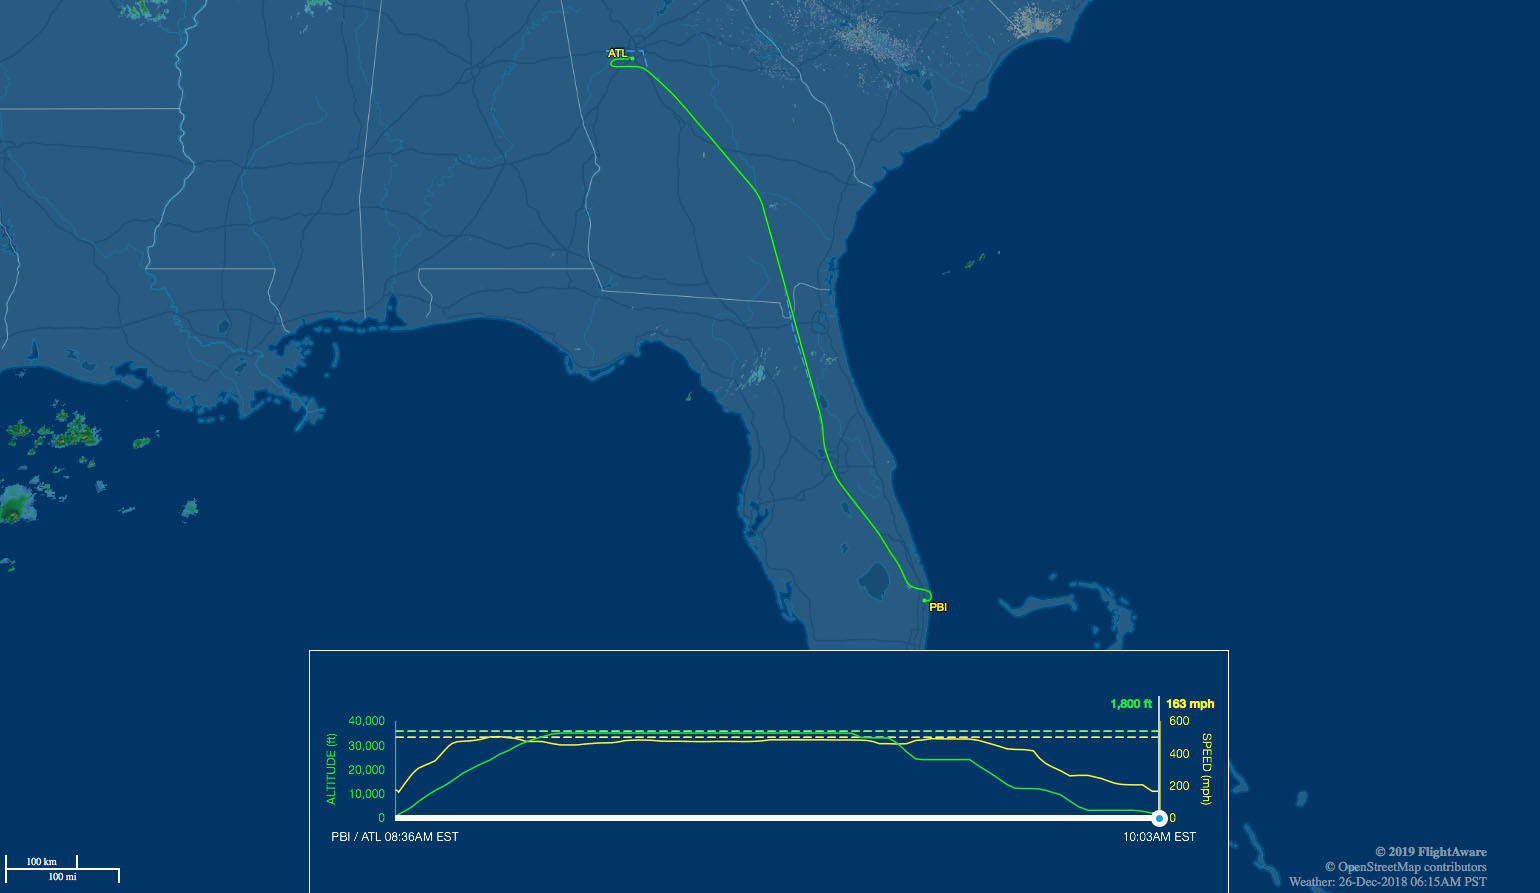 ATL to PBI route map